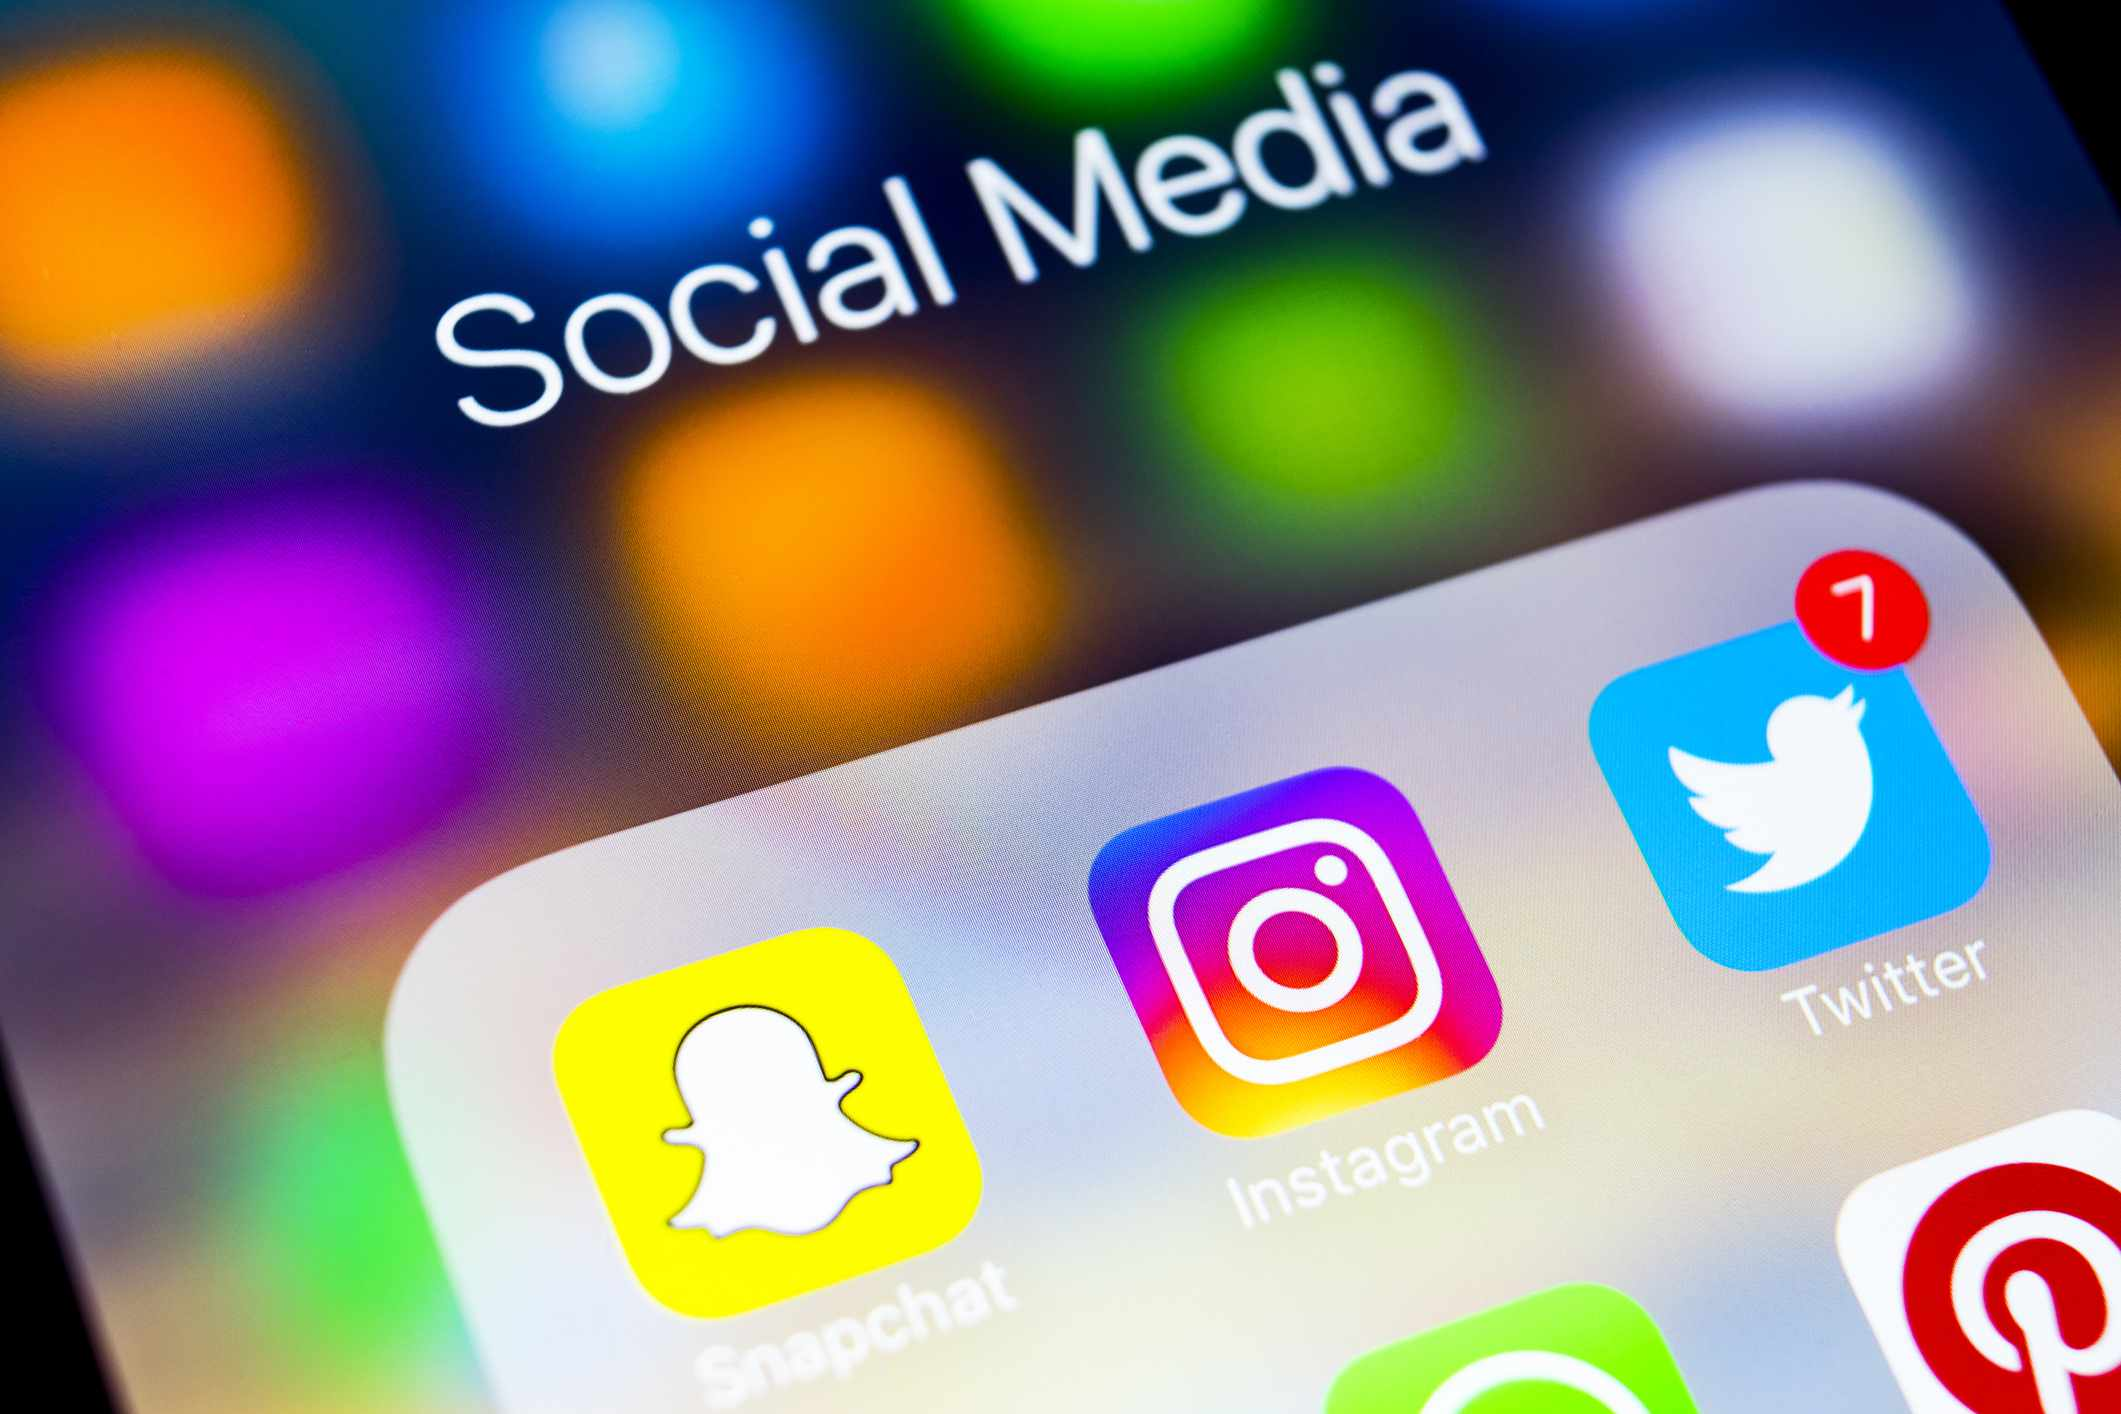 Instagram: Important Facts That You Need to Know About This Social Media App